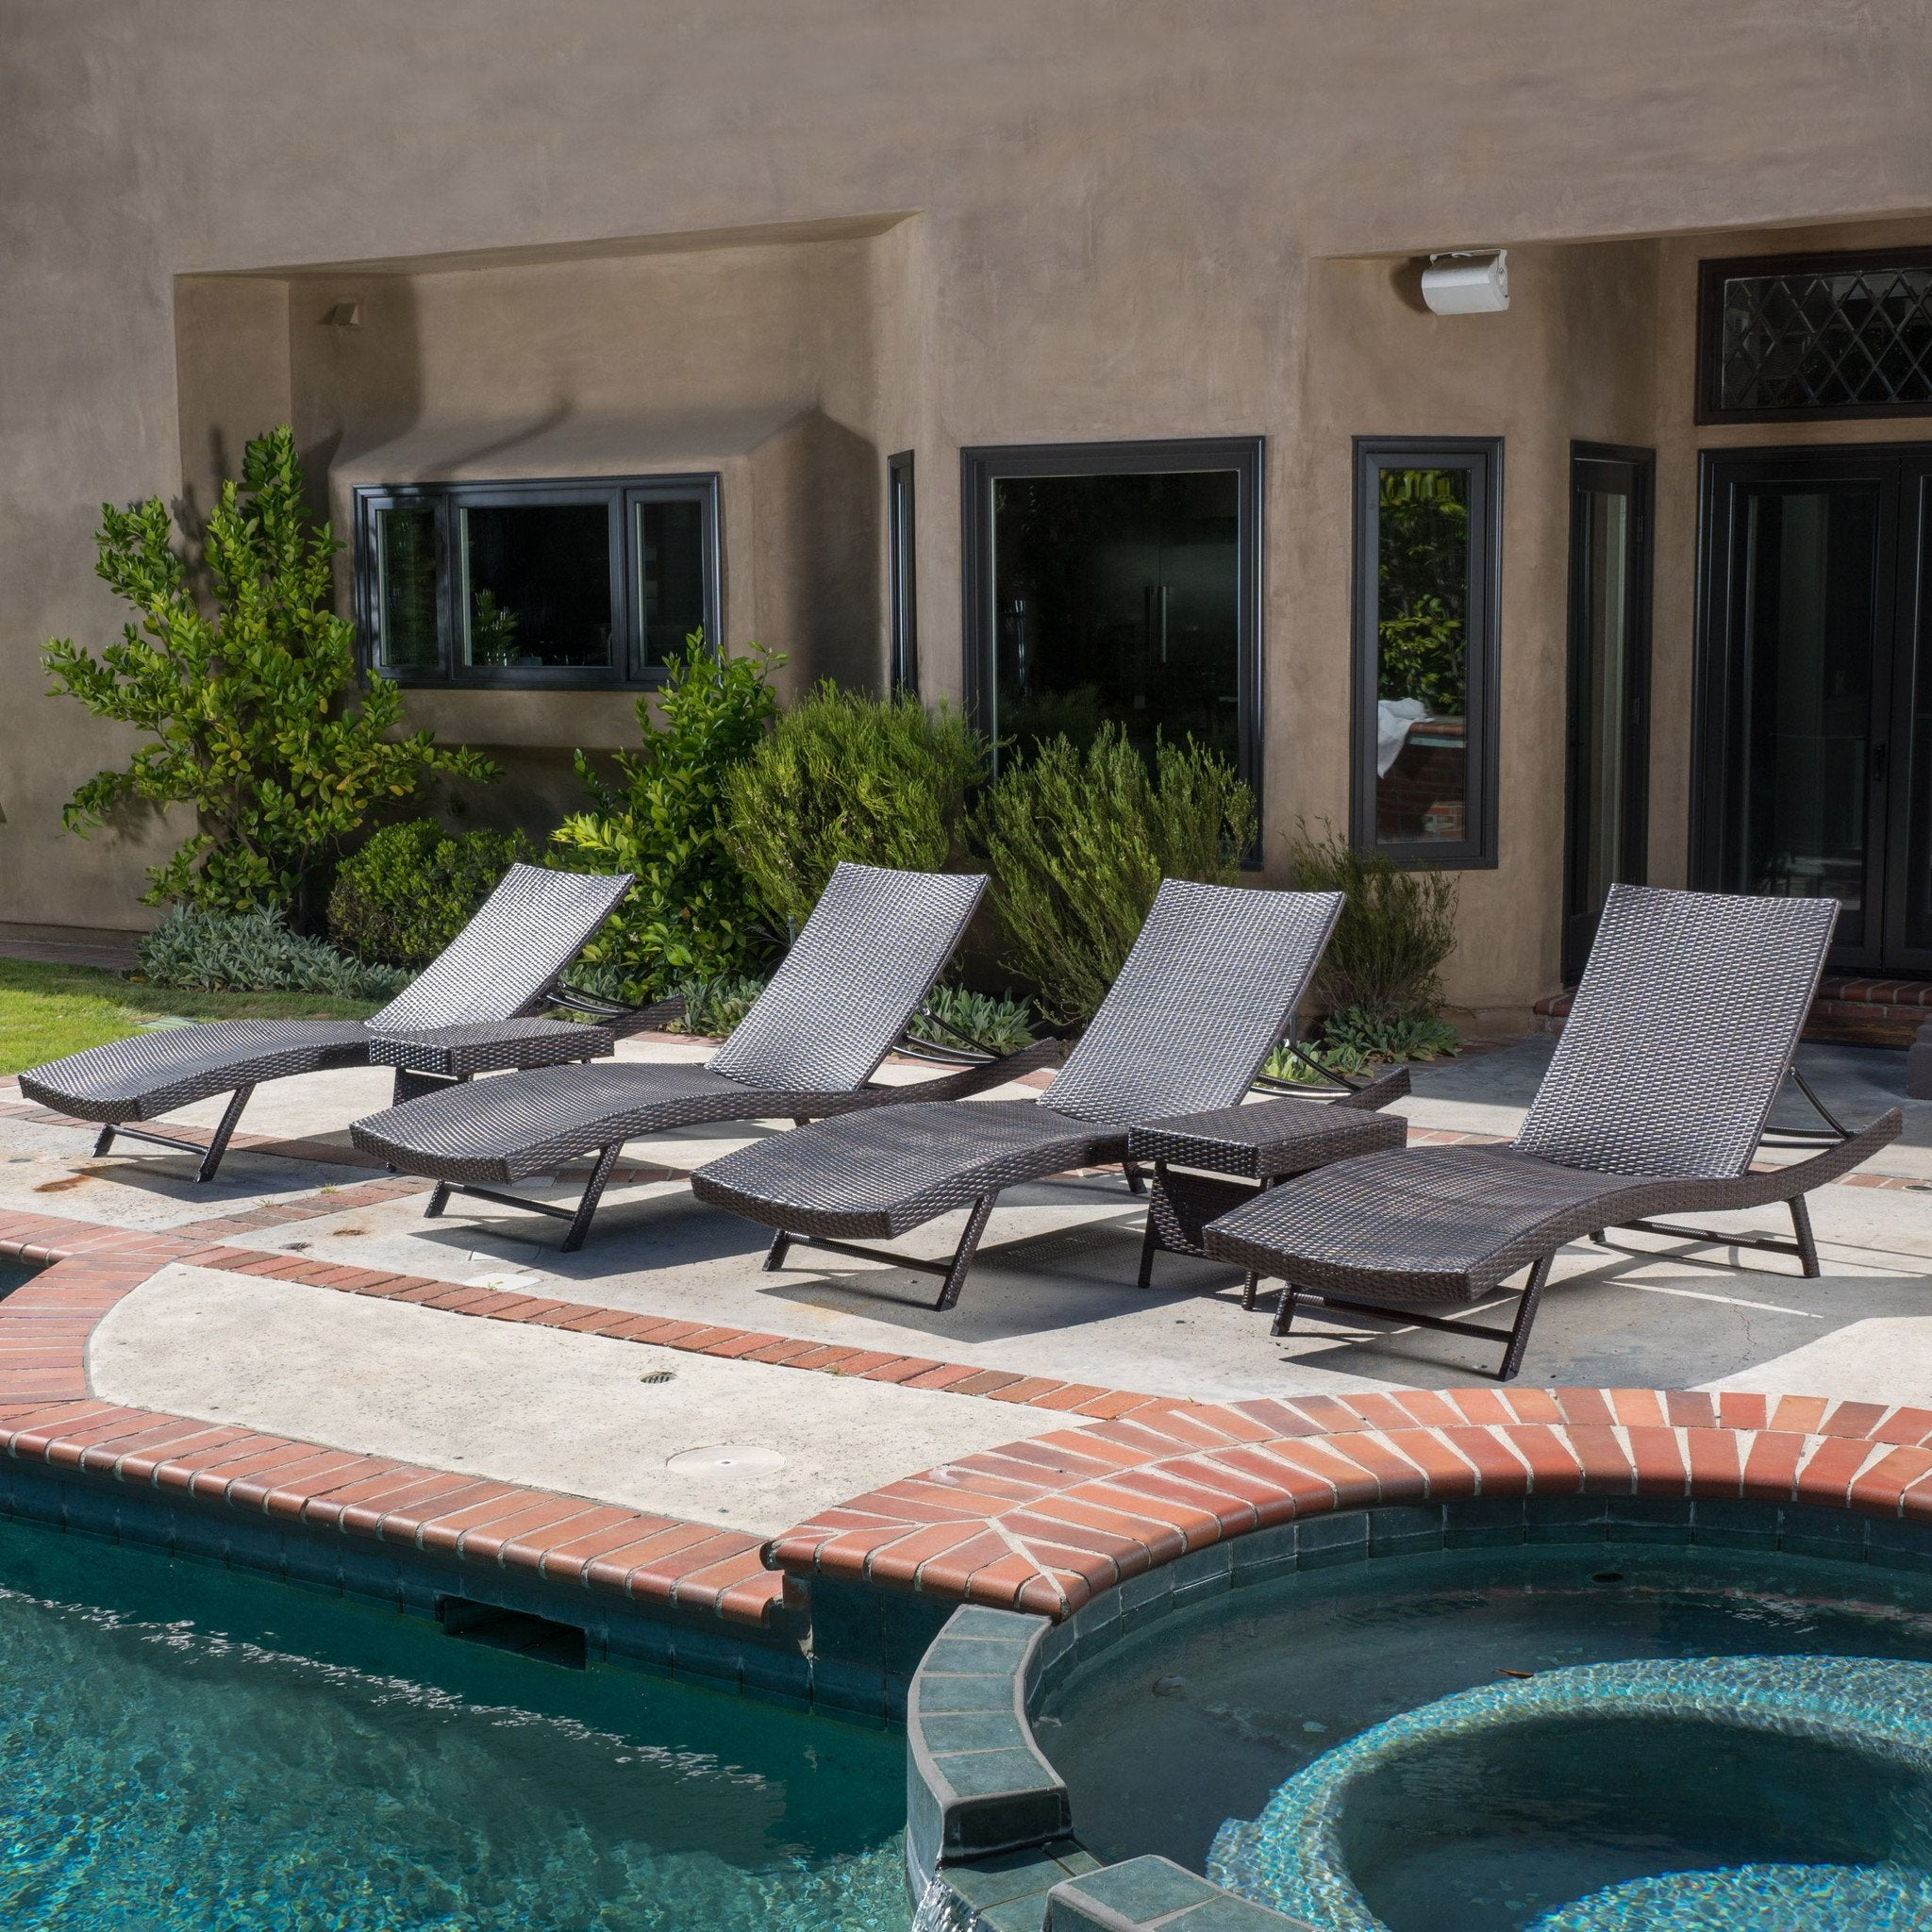 Outdoor Brown Wicker Chaise Lounge Chairs Set foto